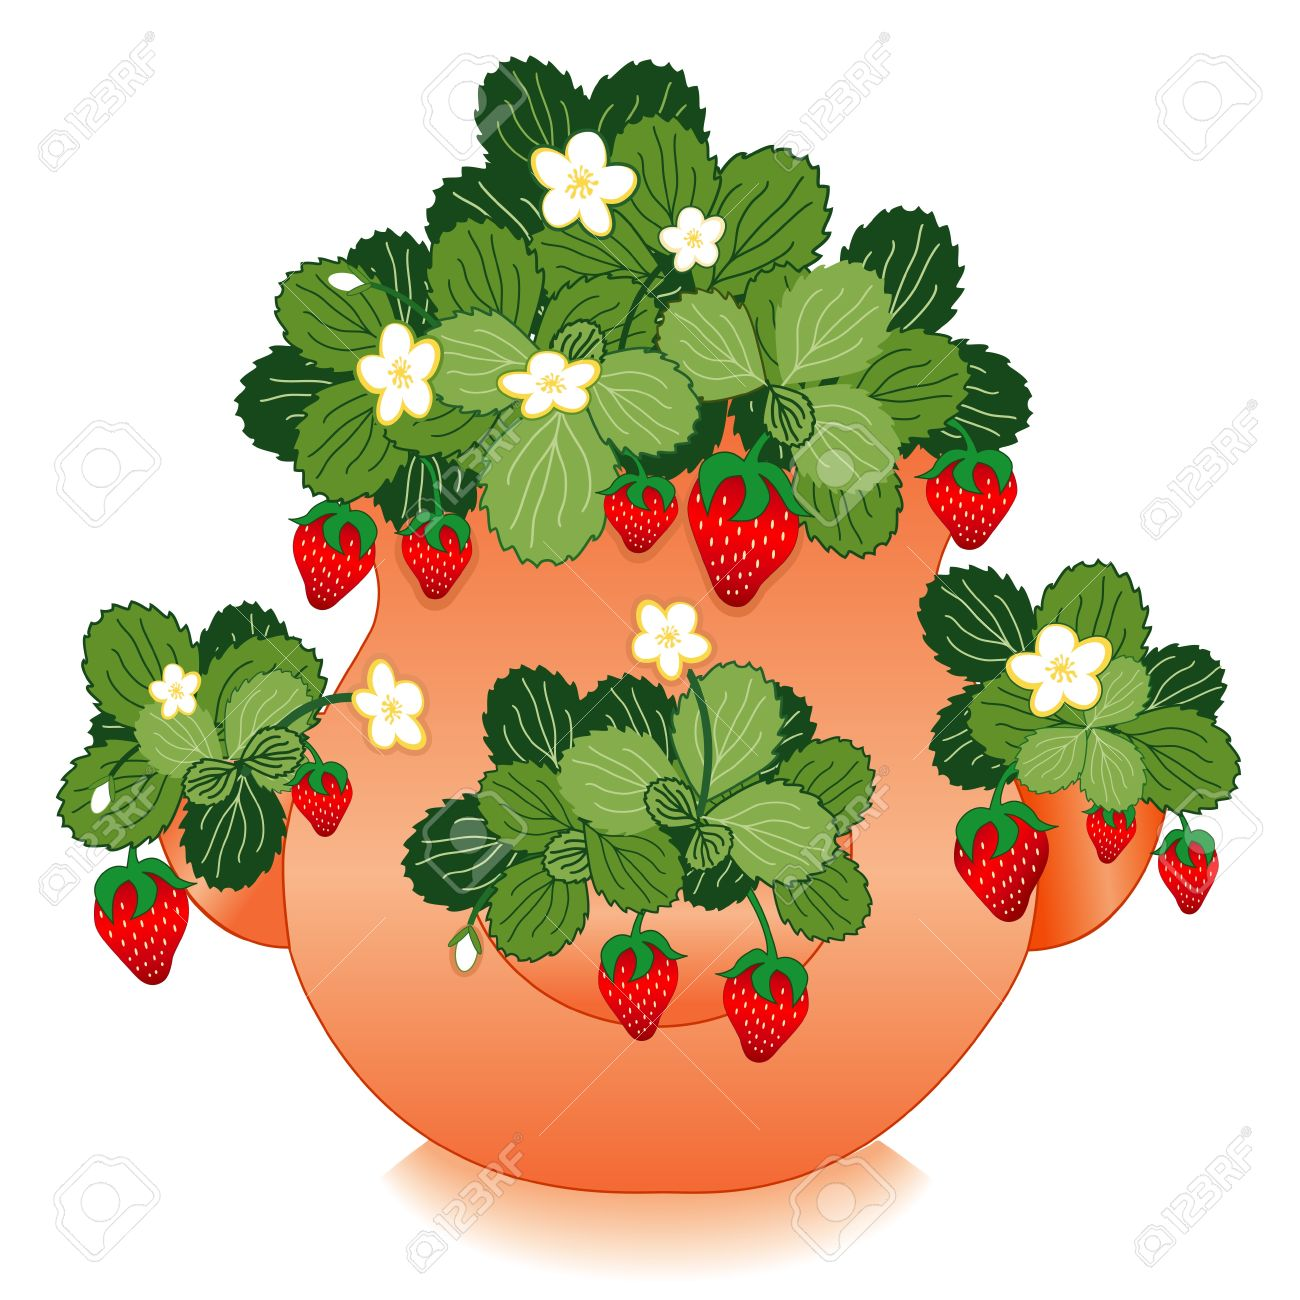 7,818 Flowerpot Stock Vector Illustration And Royalty Free.